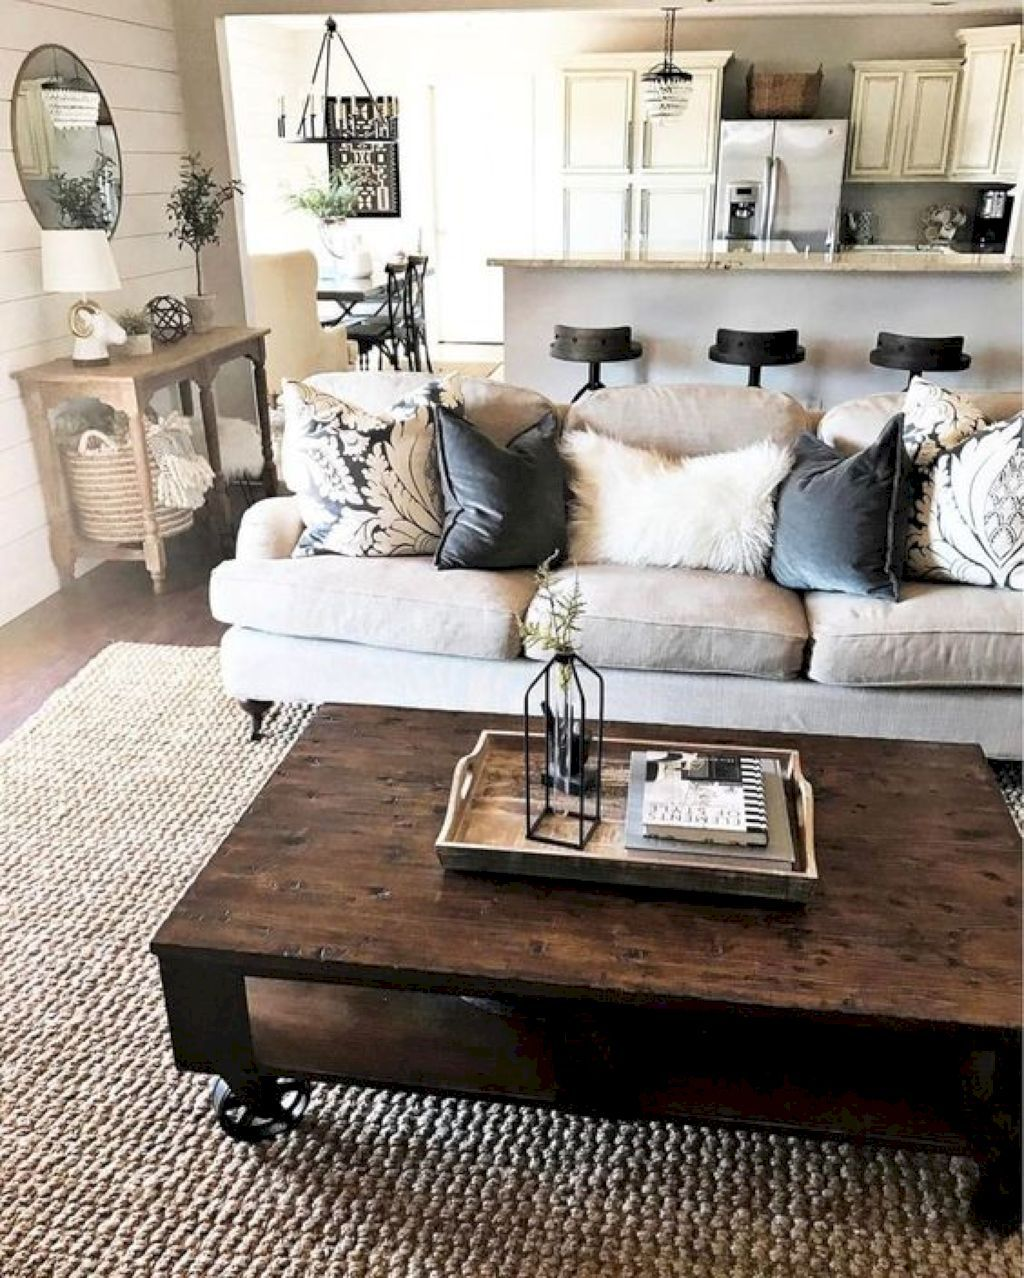 32 Rustic Farmhouse Living Room Decor Ideas For Your Home Is Essential In Every Rooms Are The Perfect E To Try A Warm